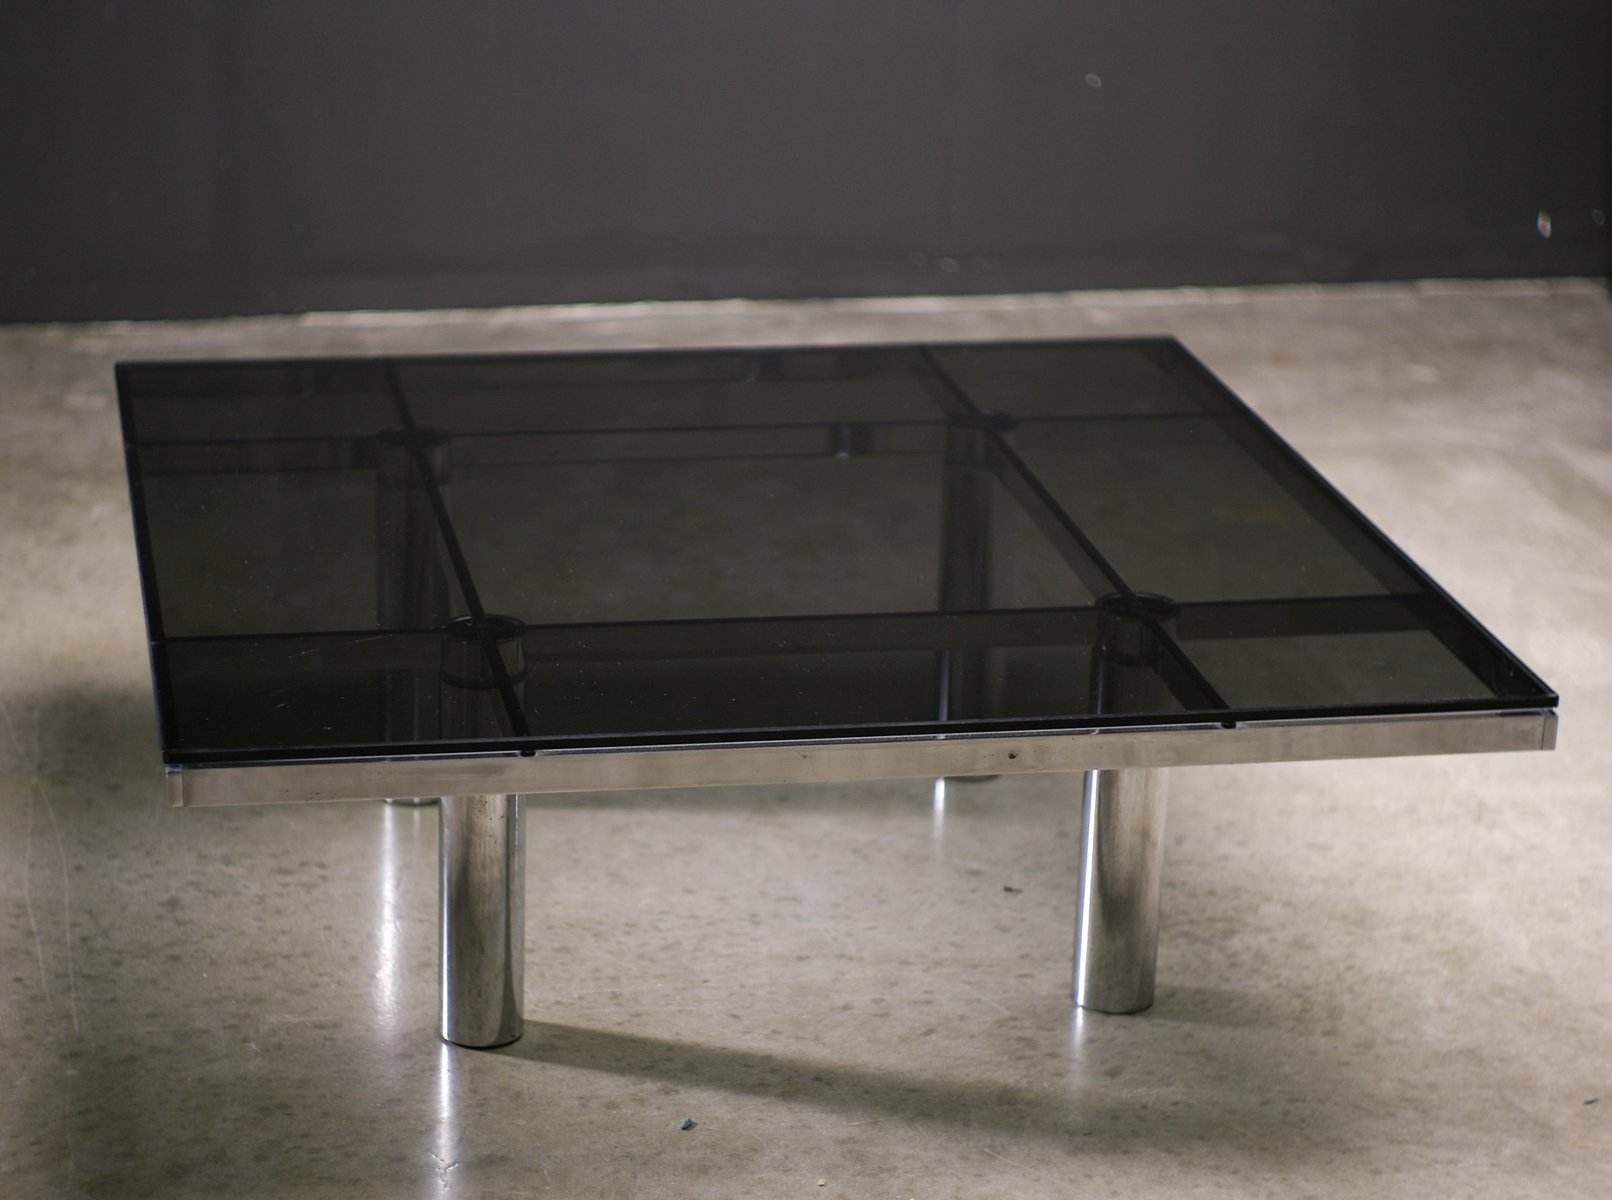 André Coffee Table by Tobia Scarpa for Gavina 1960s for sale at